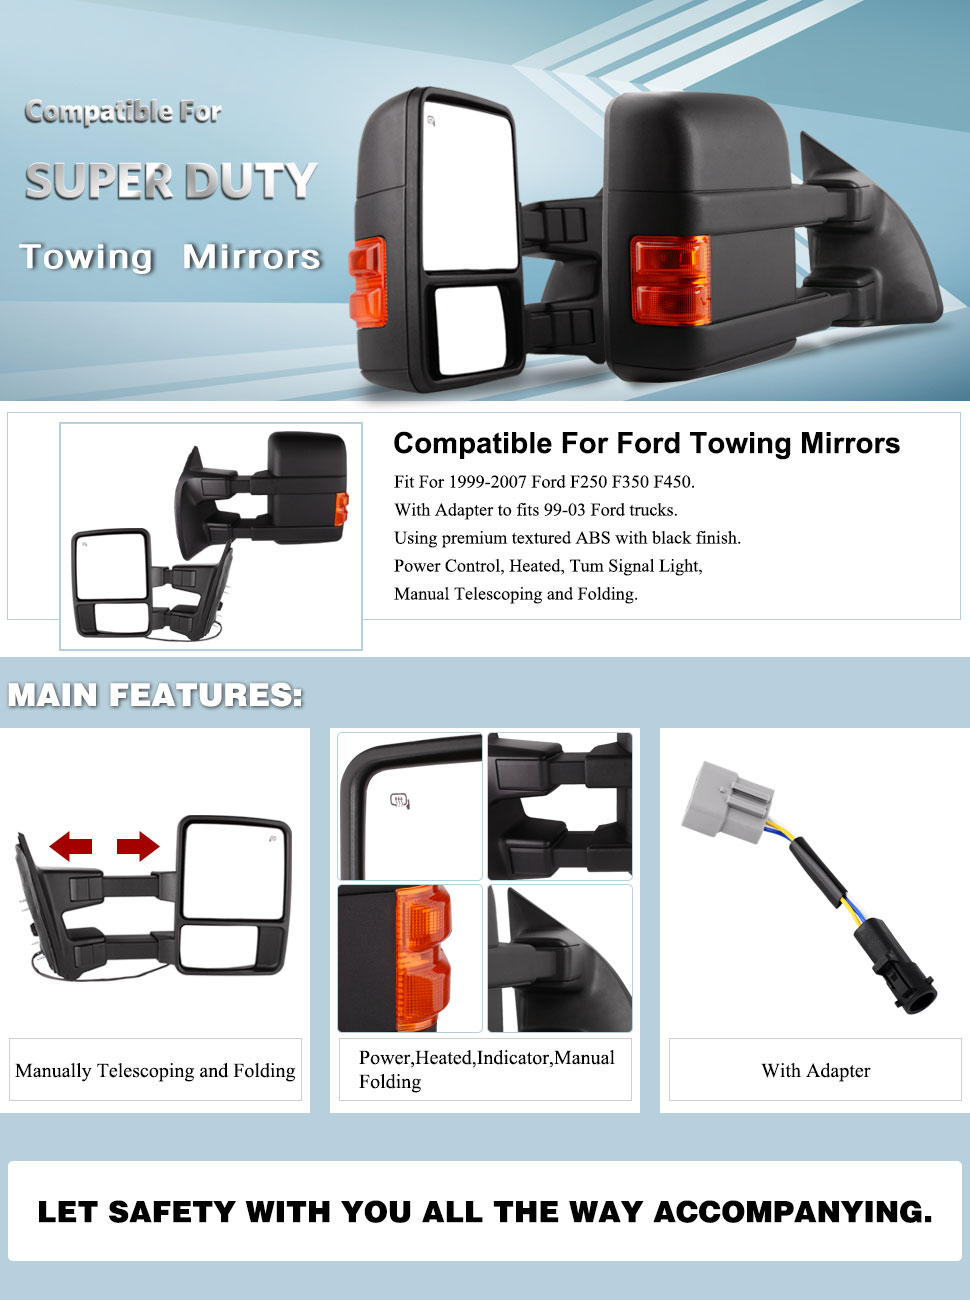 yitamotor towing mirrors compatible for ford 1999 2007 ford f250 f350 f450 f550 super duty tow mirrors power heated with turn signal light side 2001 f250 power mirror wiring diagram ford f250 mirror wiring wiring diagram